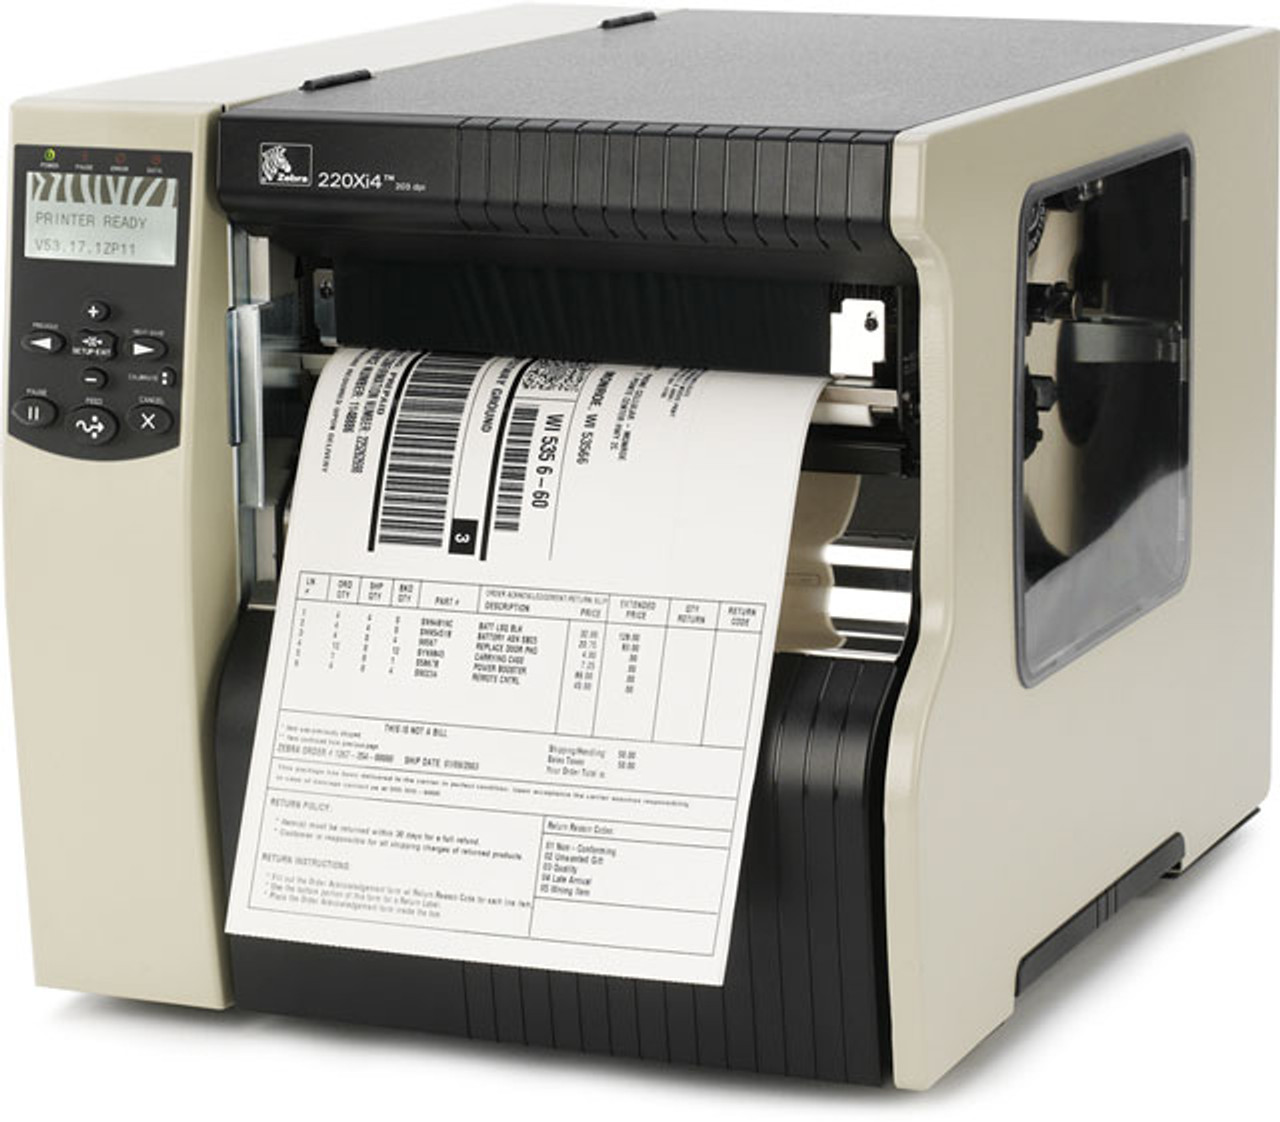 Zebra Xi Series 220Xi4 Thermal Label Printer